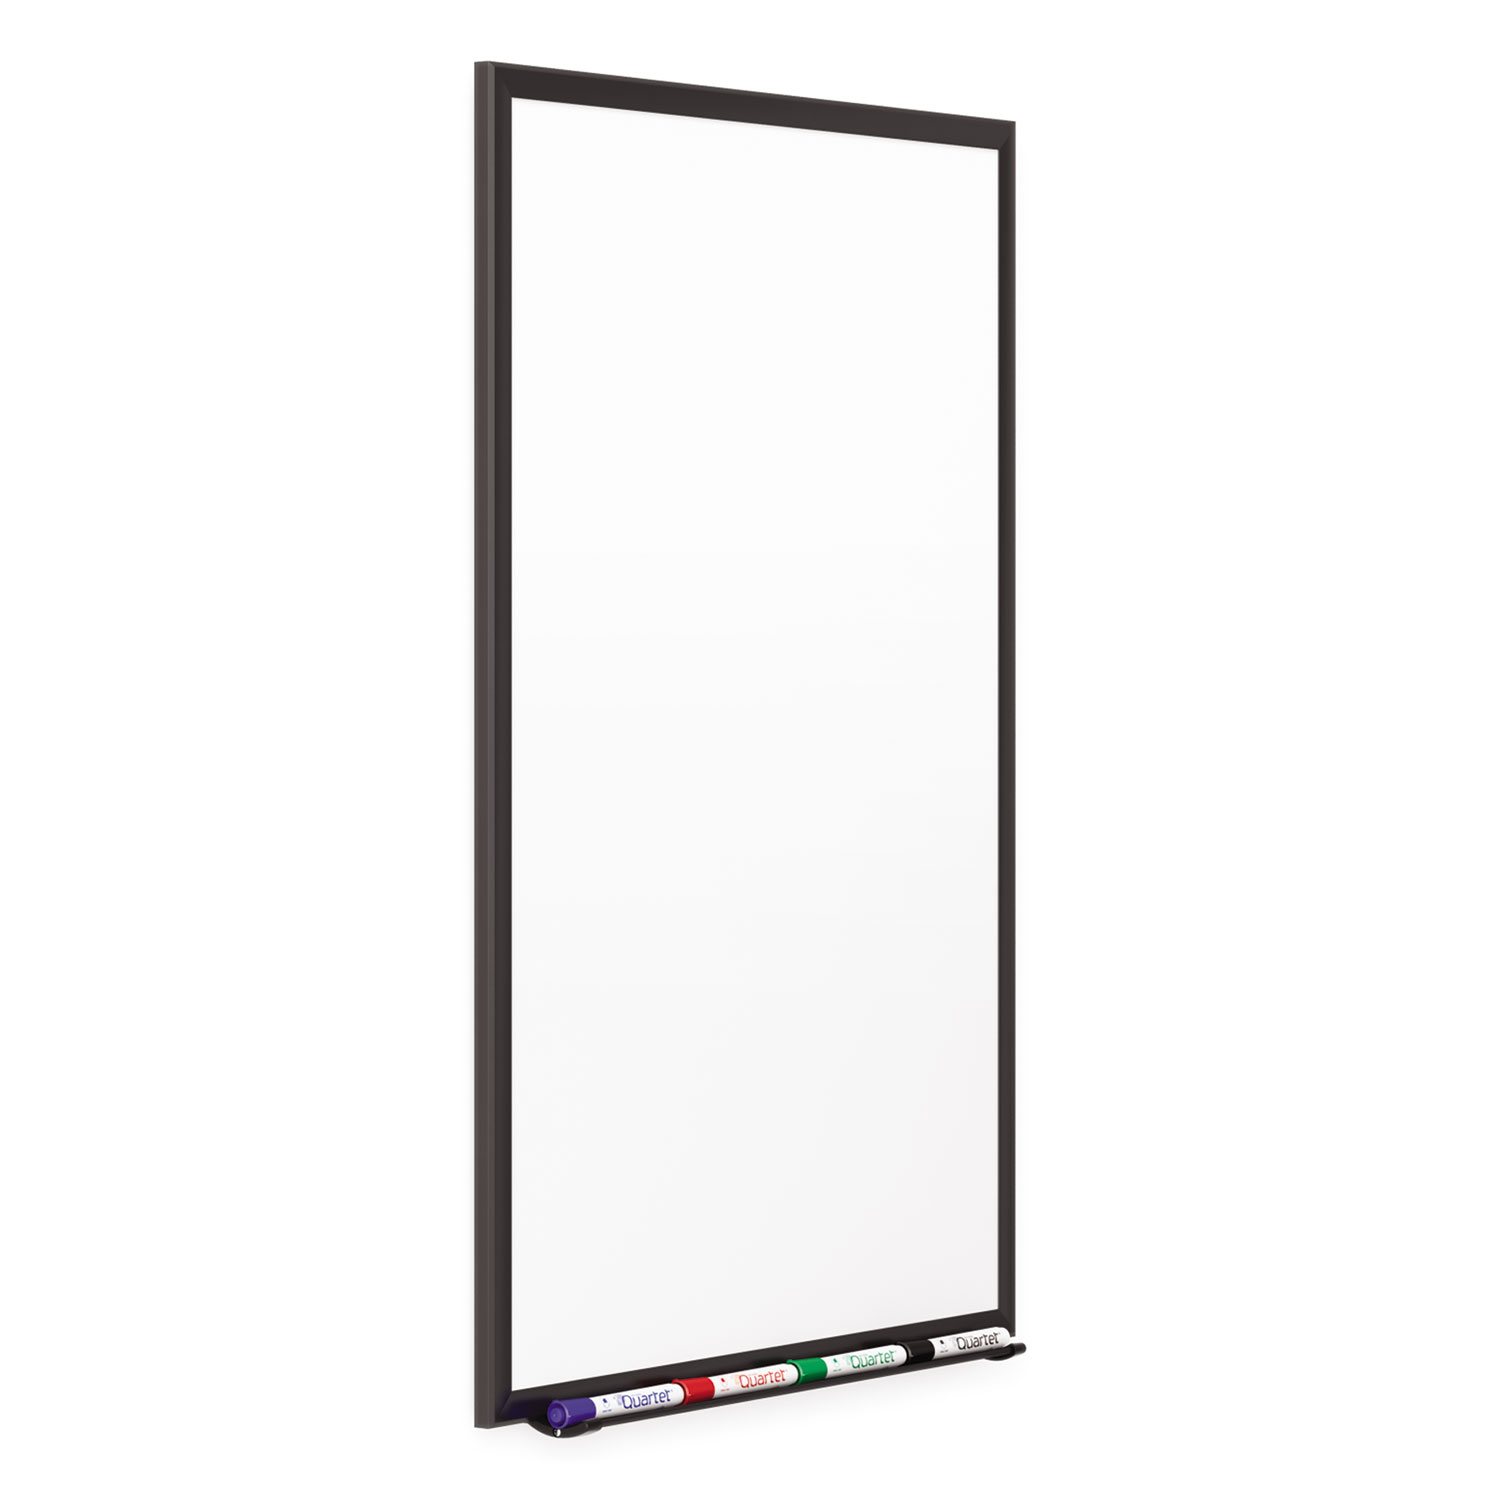 Qrt B Quartet Classic Porcelain Magnetic Whiteboard